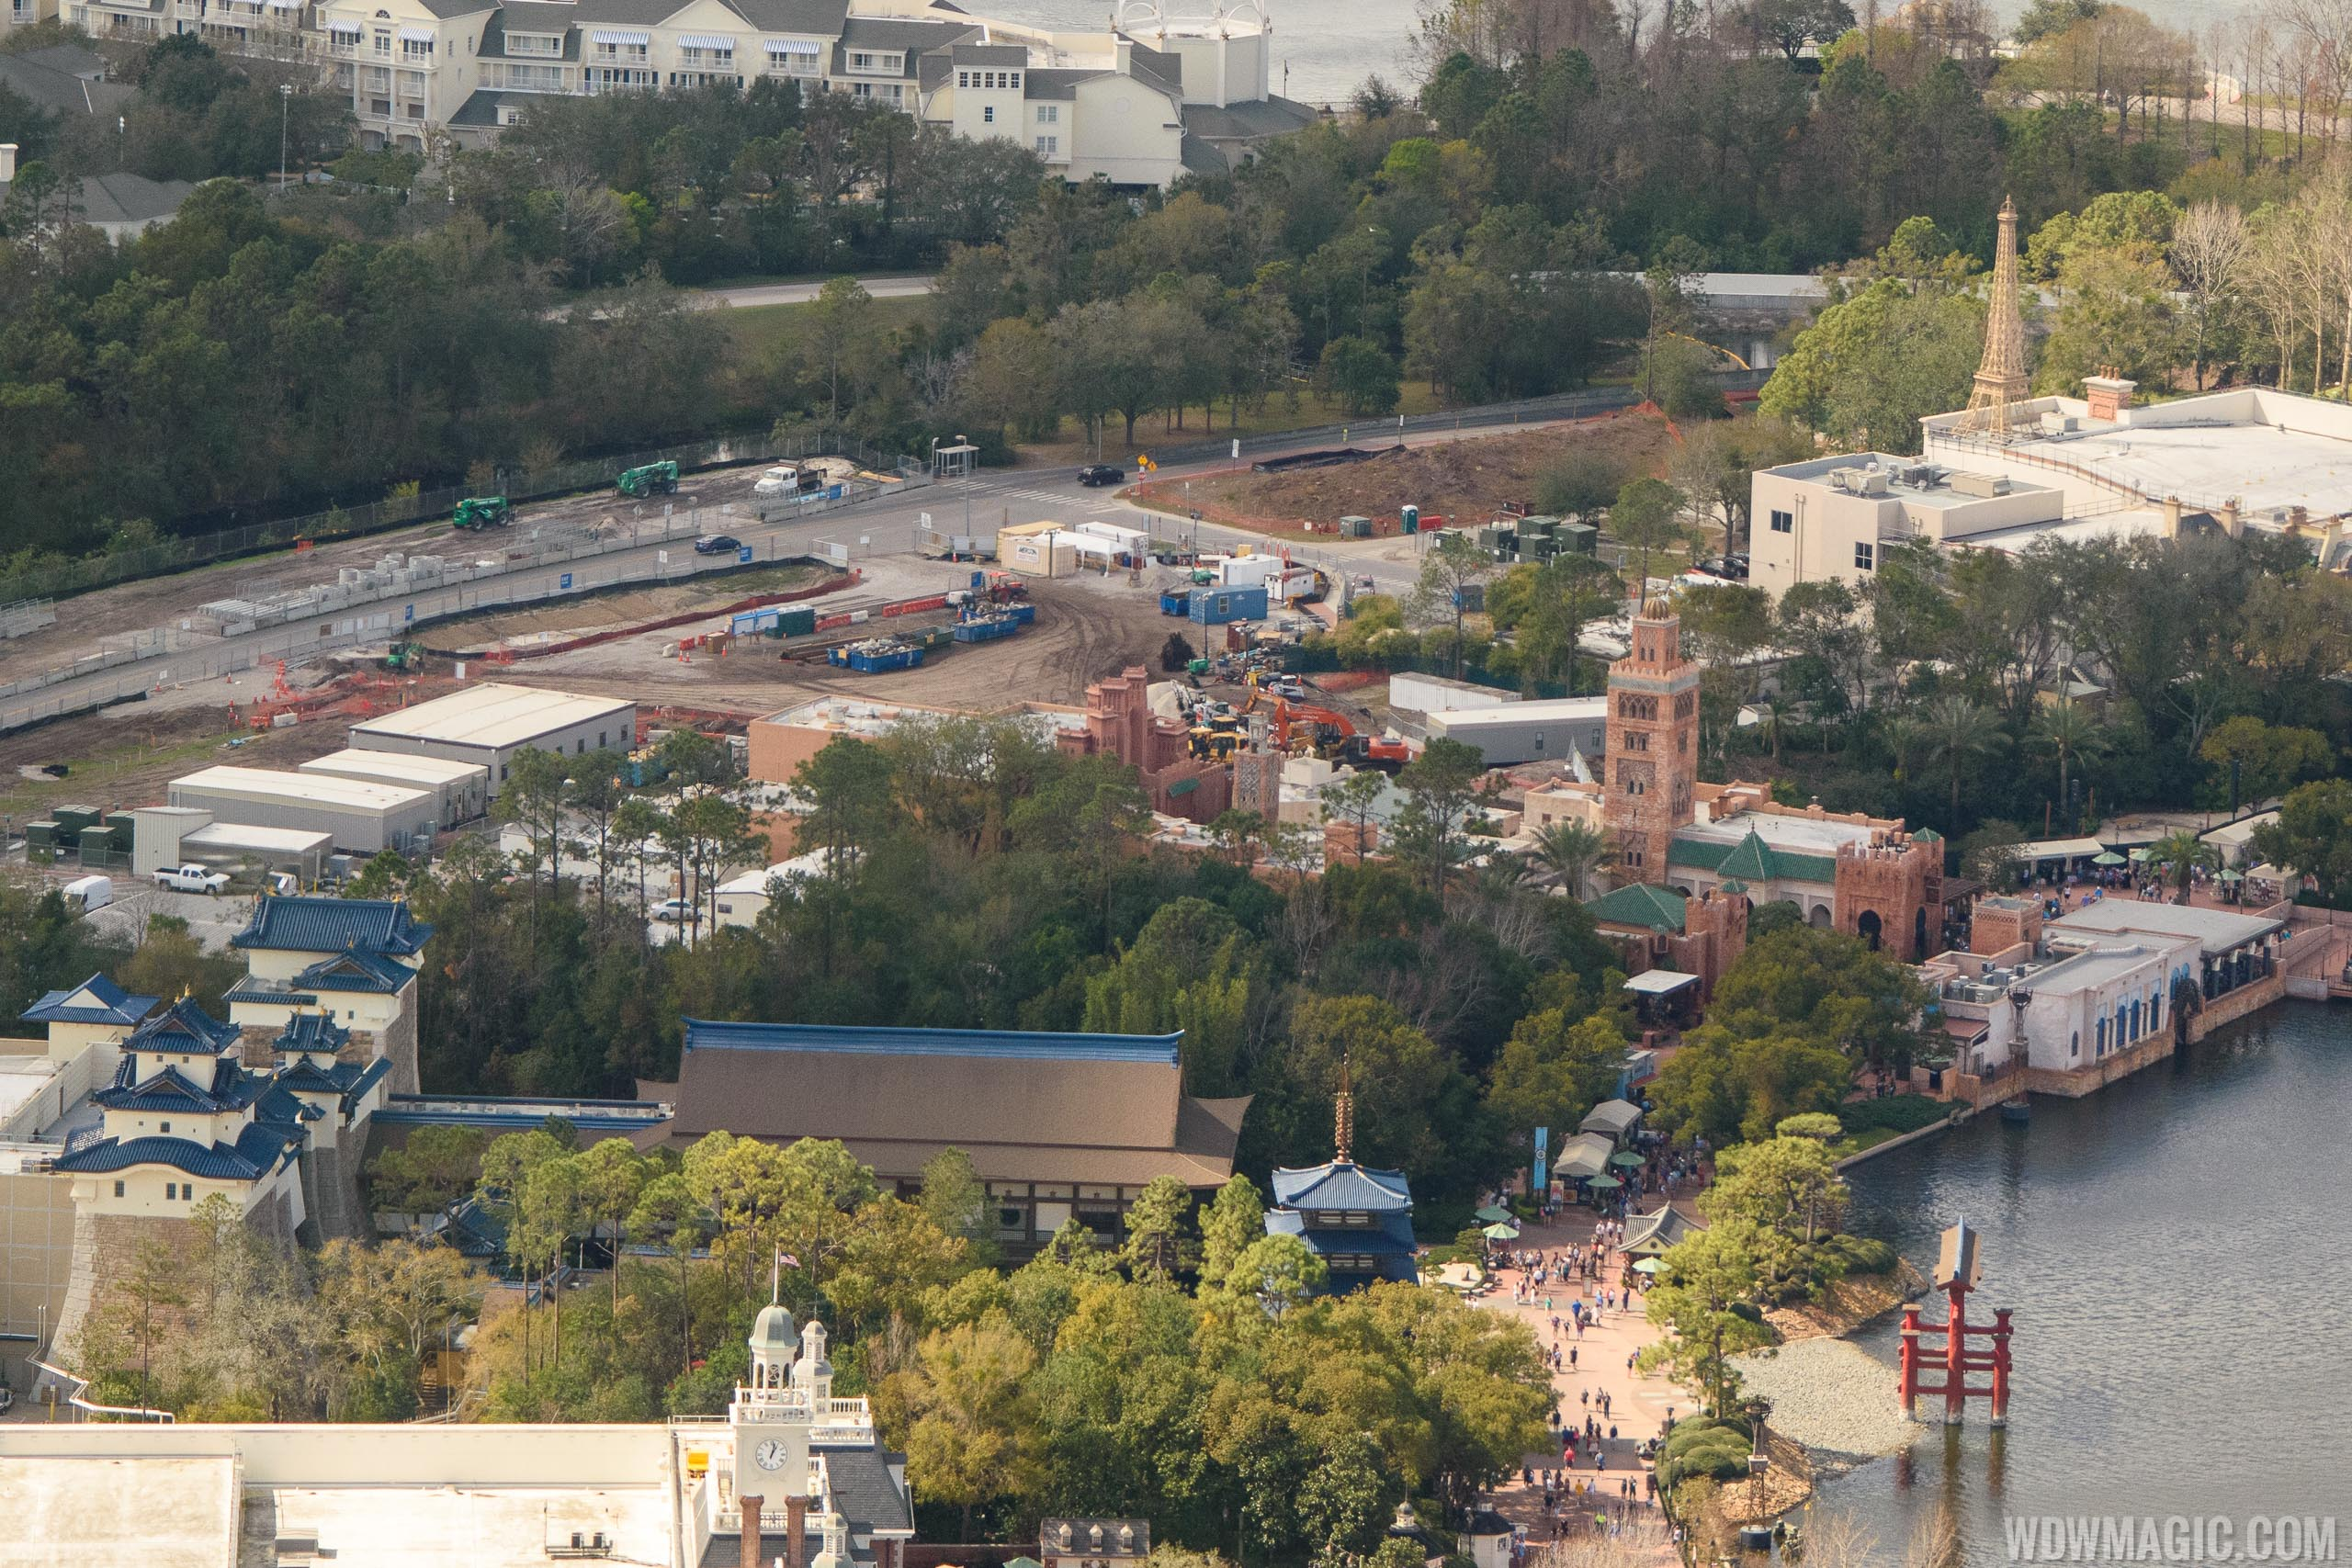 Ratatouille aerial construction pictures - February 2018